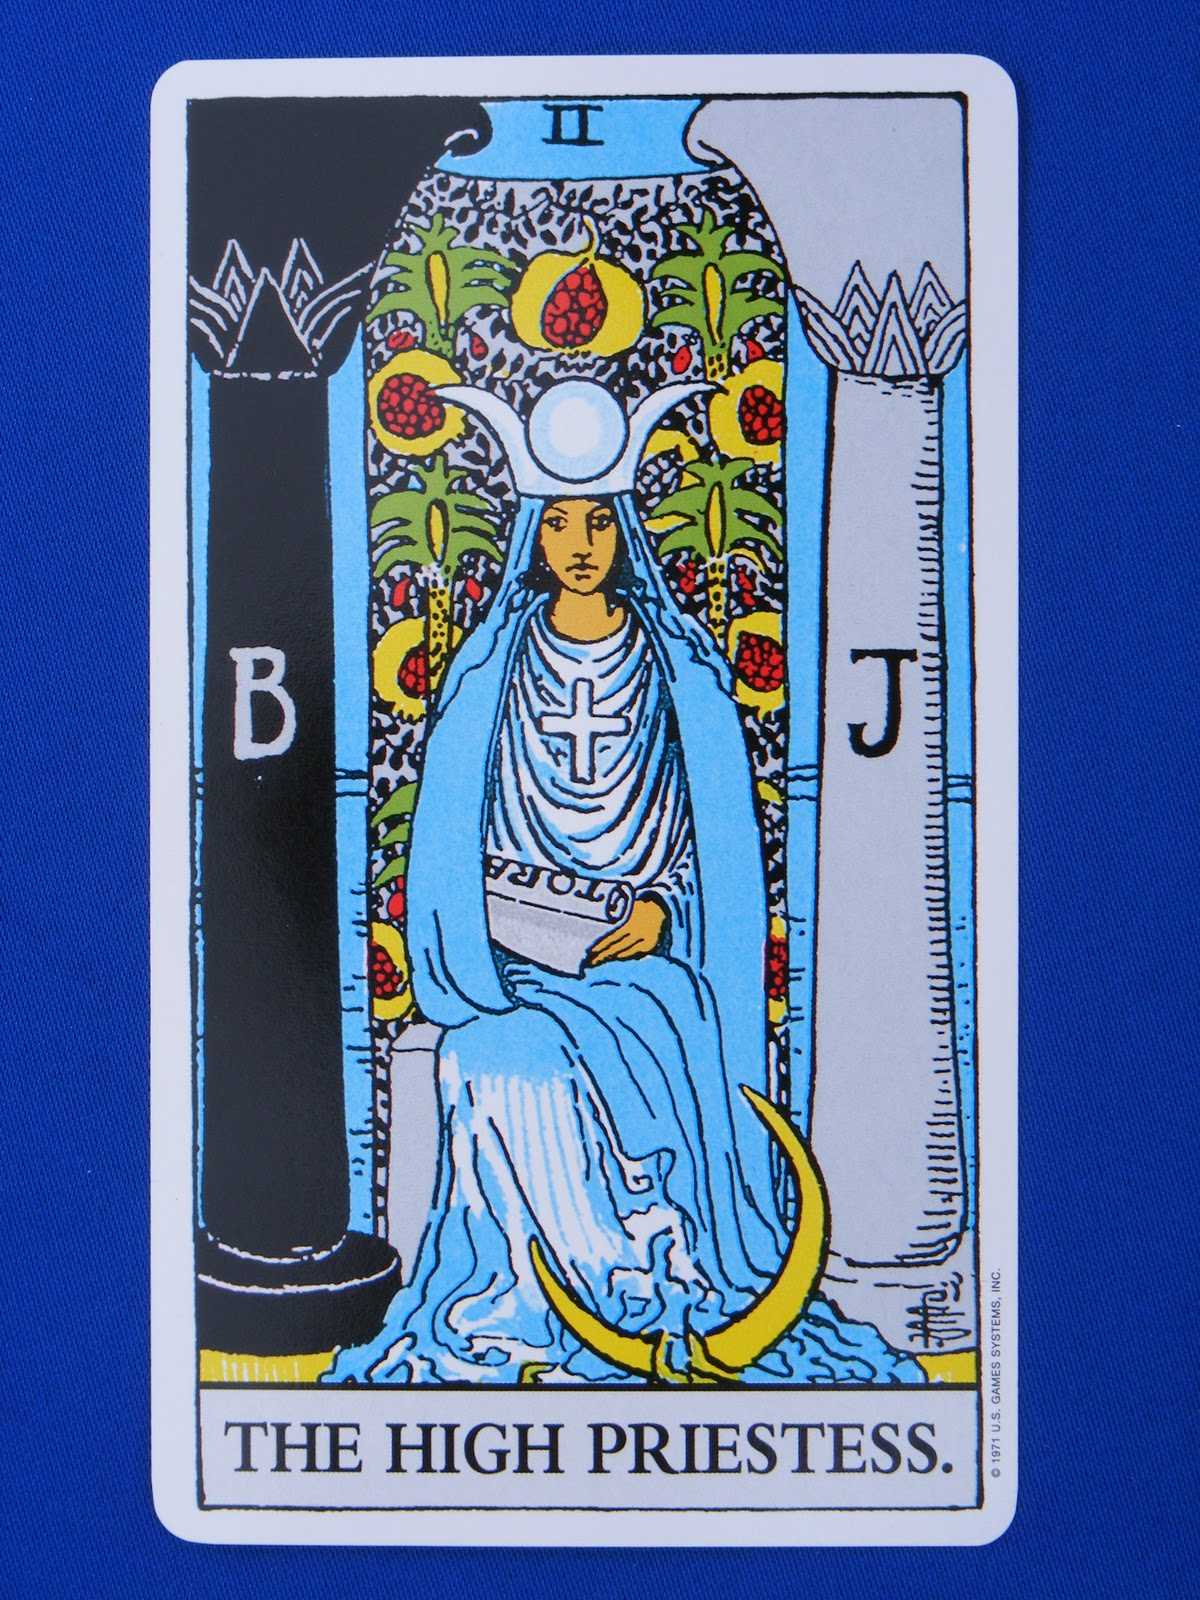 High Priestess Full Colorful Deck Major Stock Illustration: Spritely Spirited: The High Priestess Of 2012